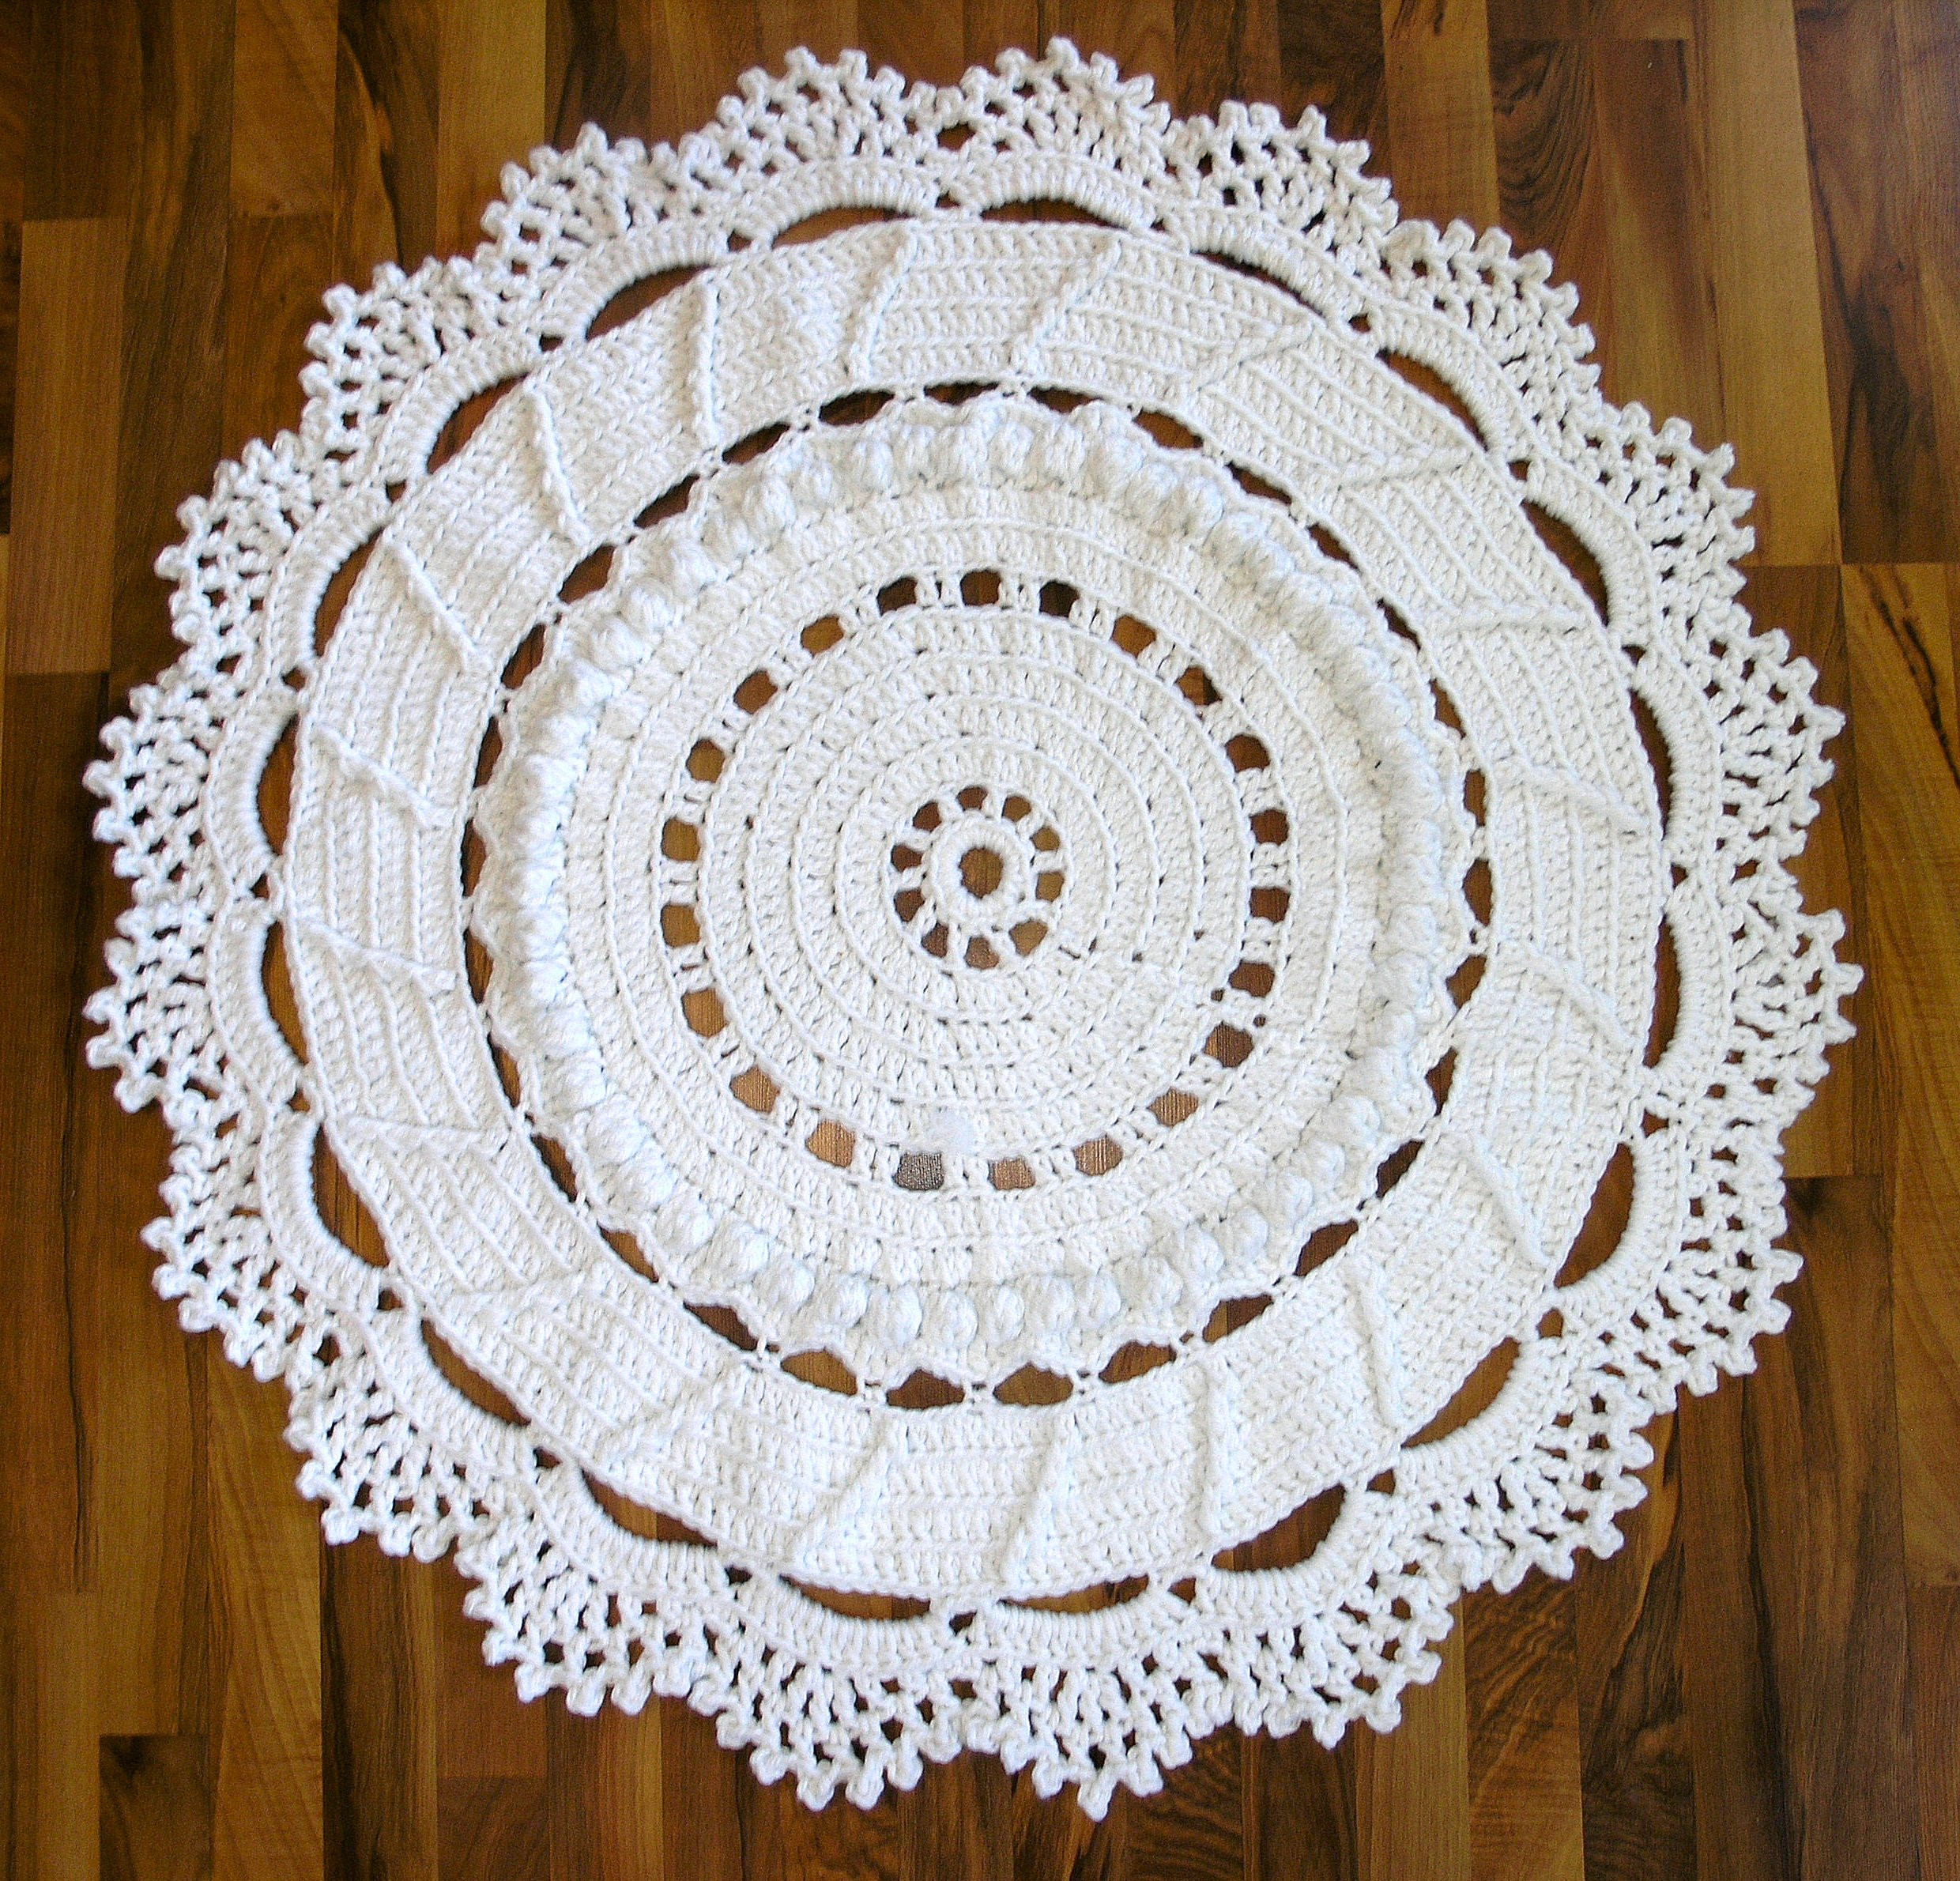 Dances With Wools Blog Archive A Giant Crochet Doily